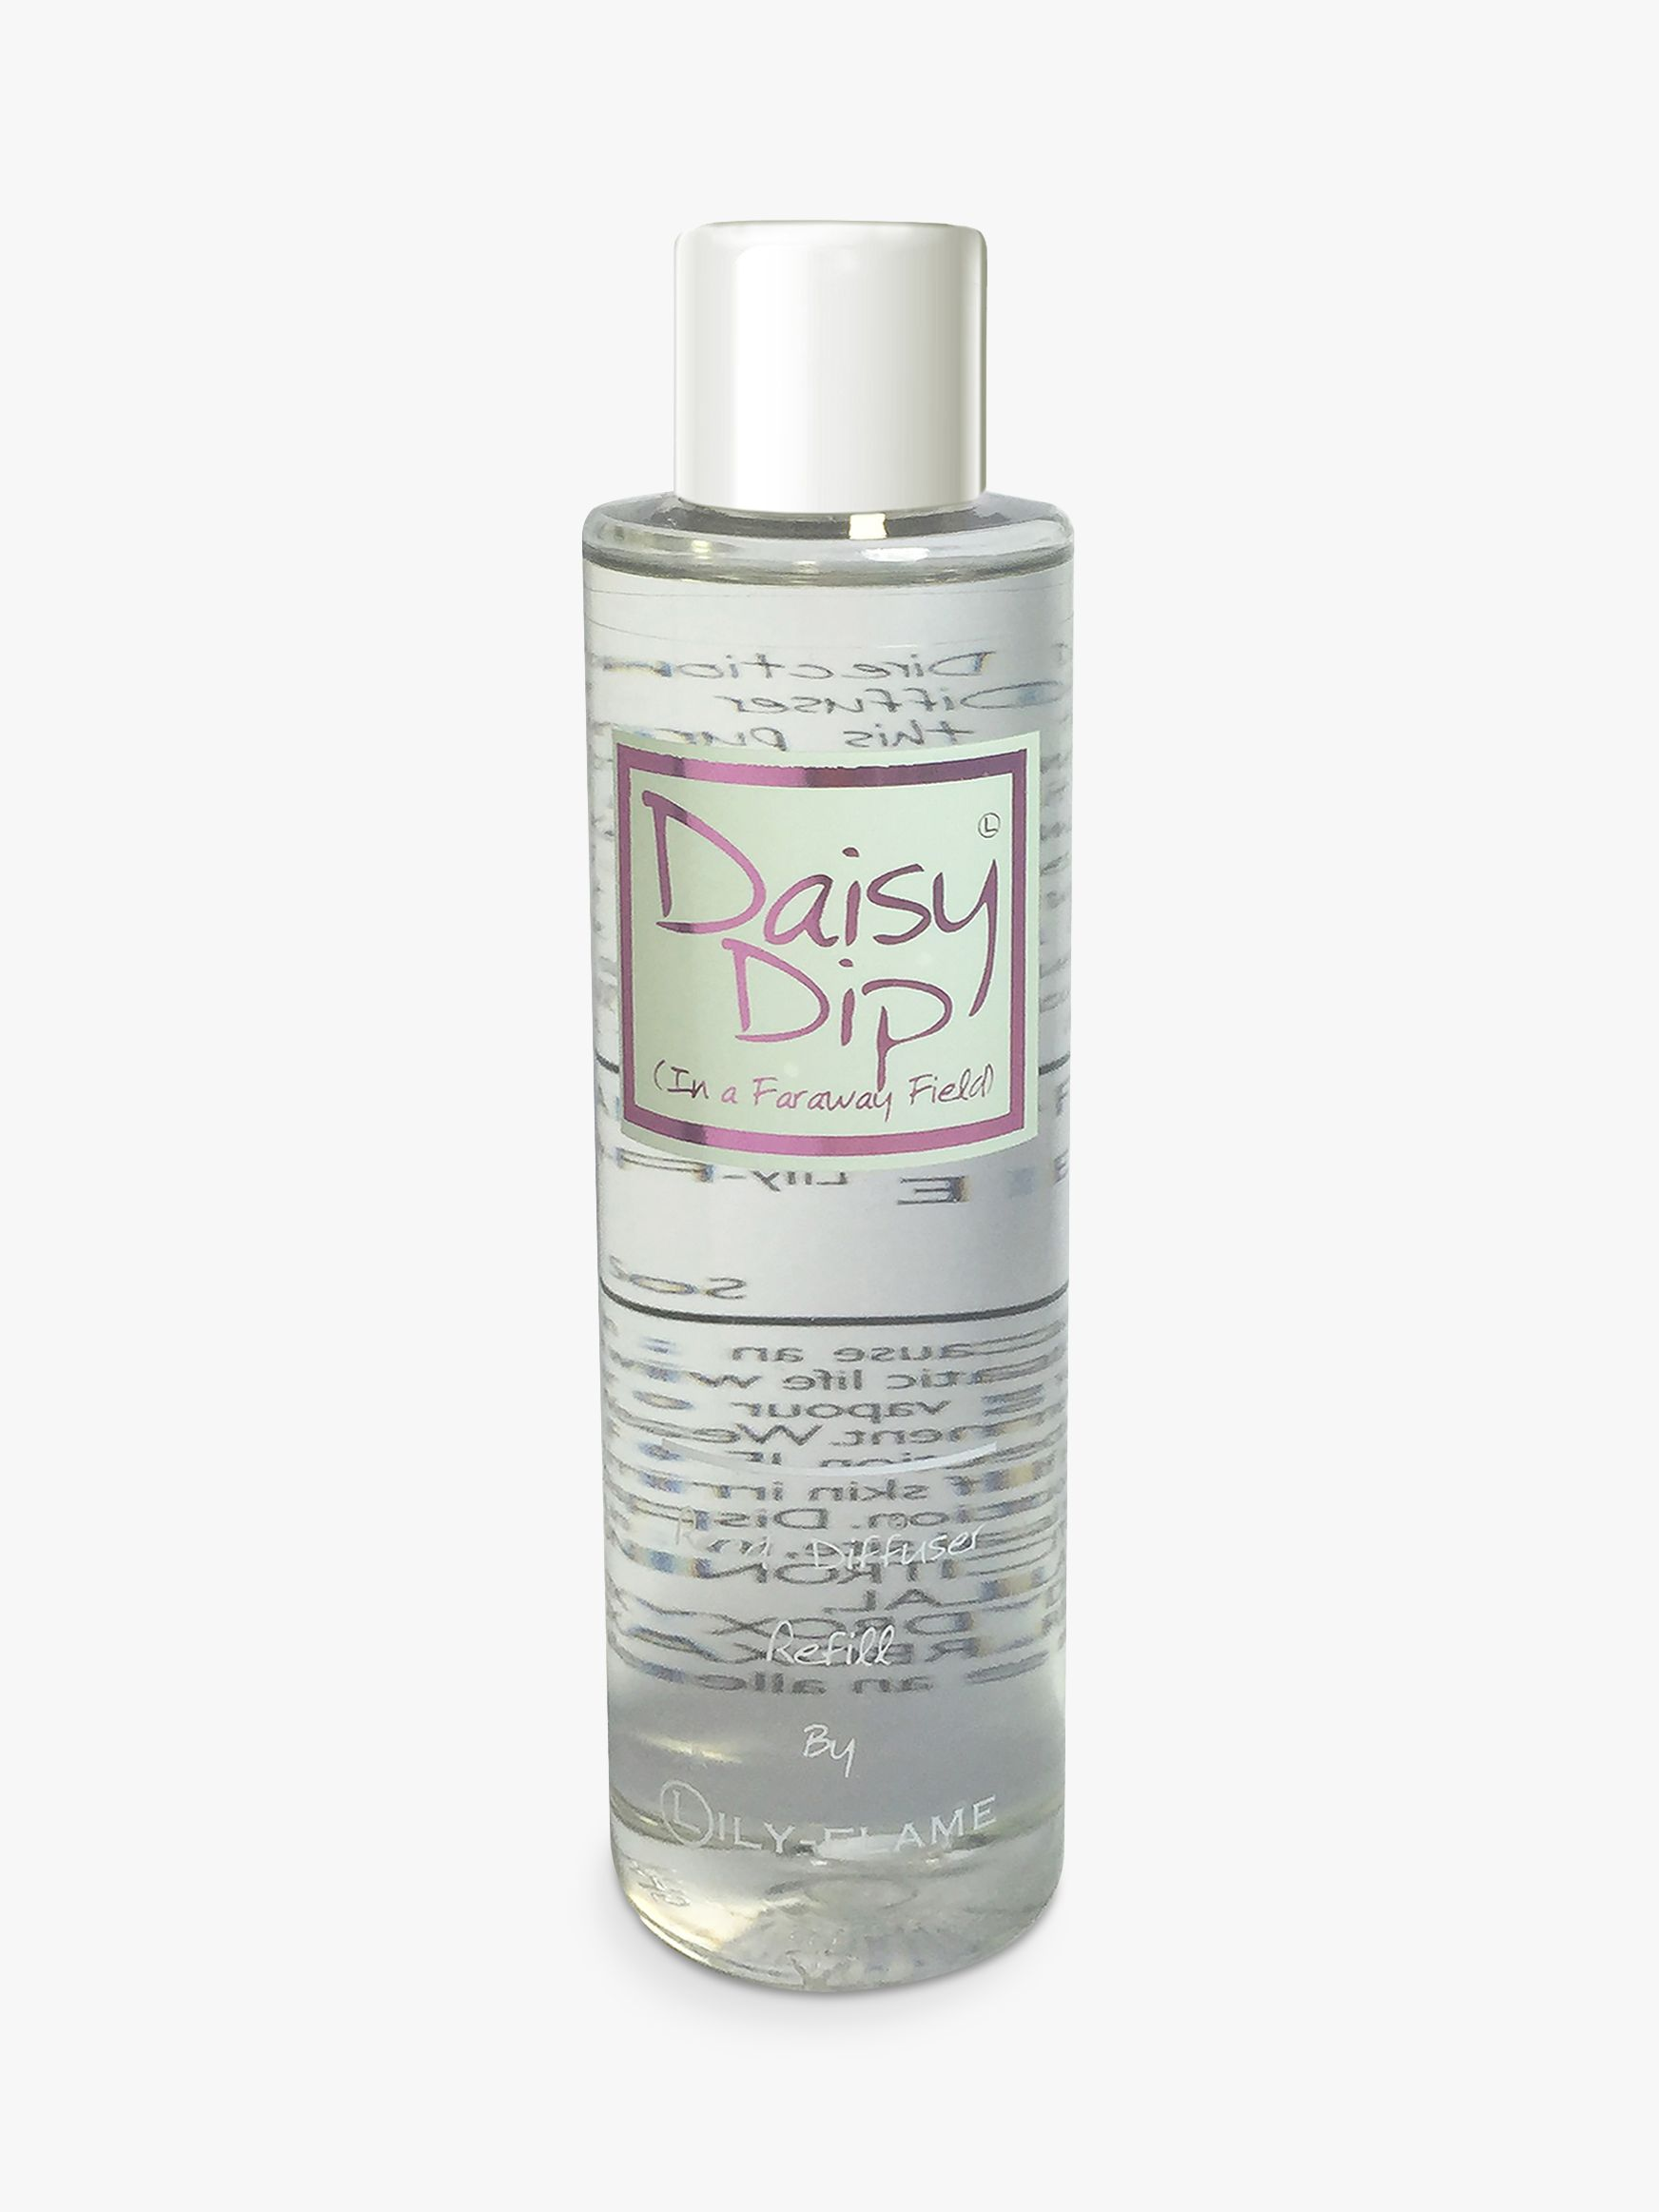 Lily-Flame Lily-Flame Daisy Dip Diffuser Refill